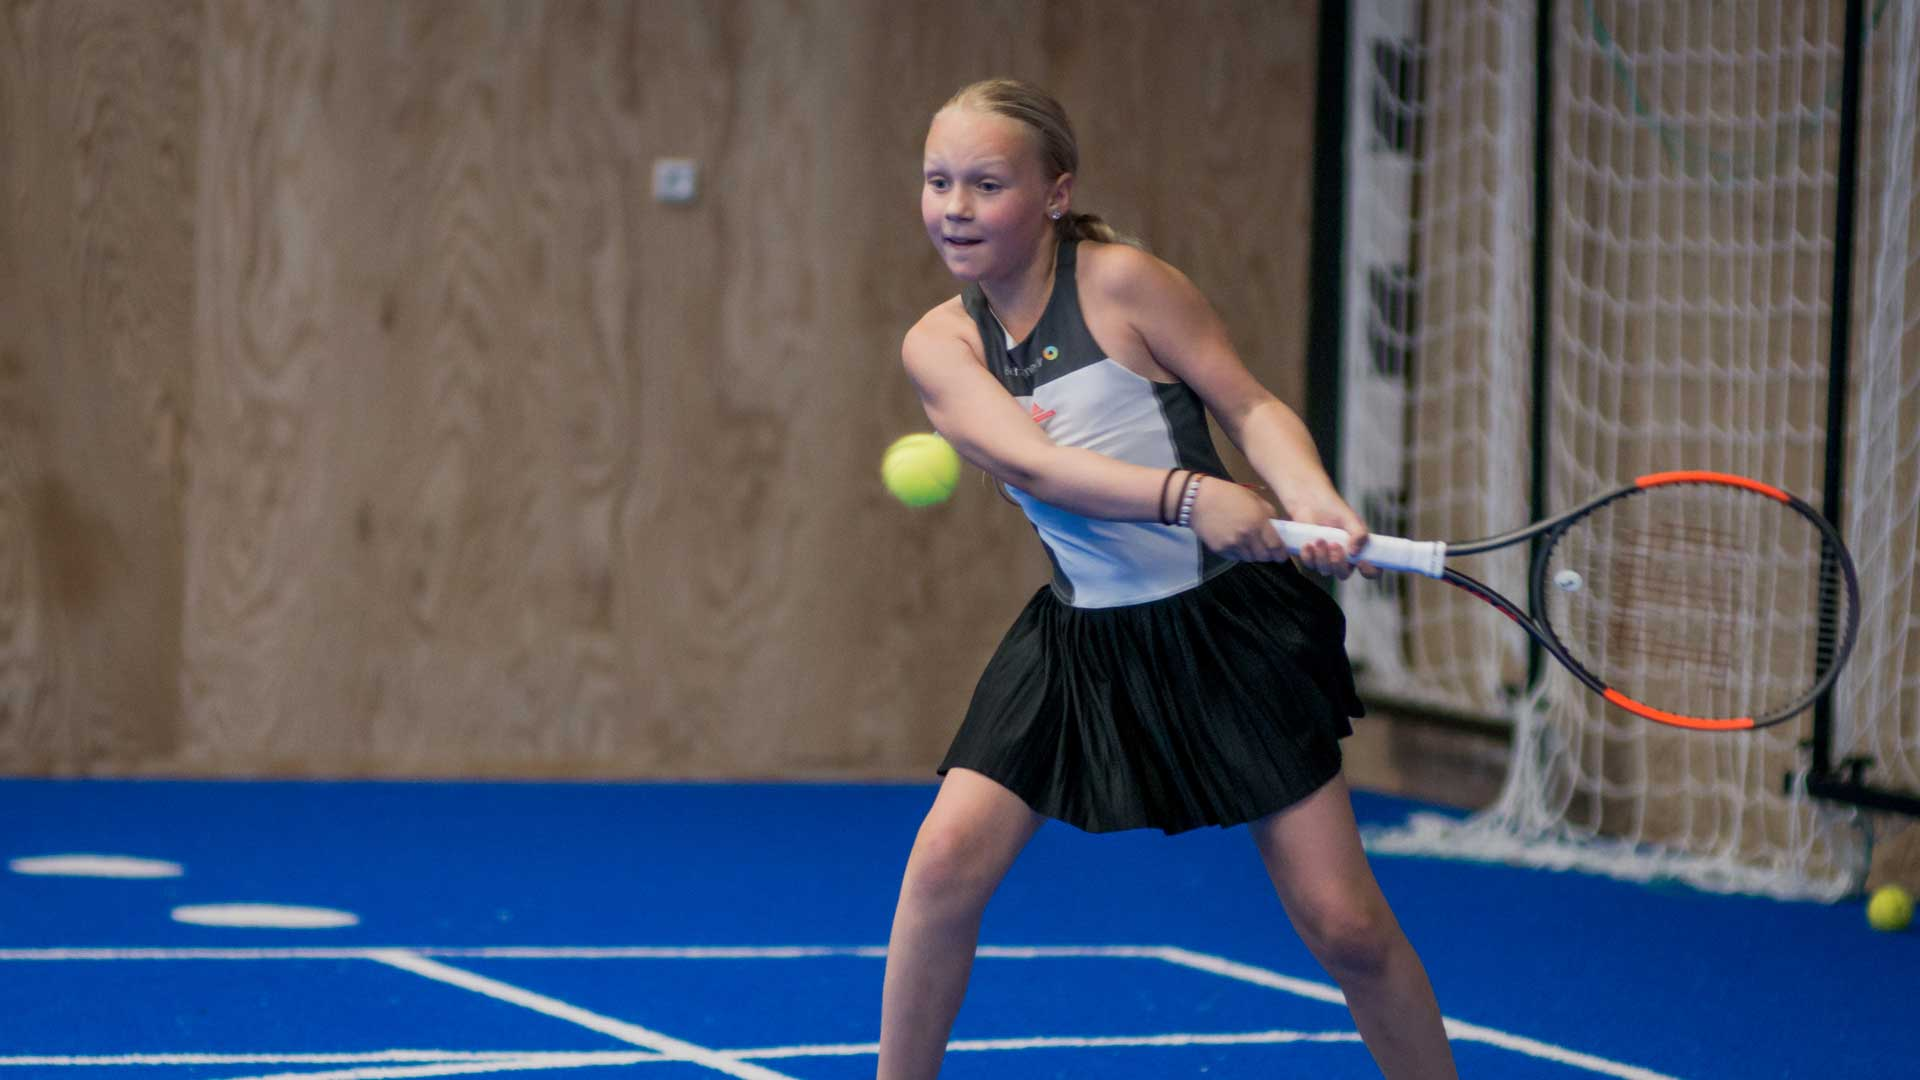 Cecilie-Fridthjof-Scandinavian-Tennis-Agency